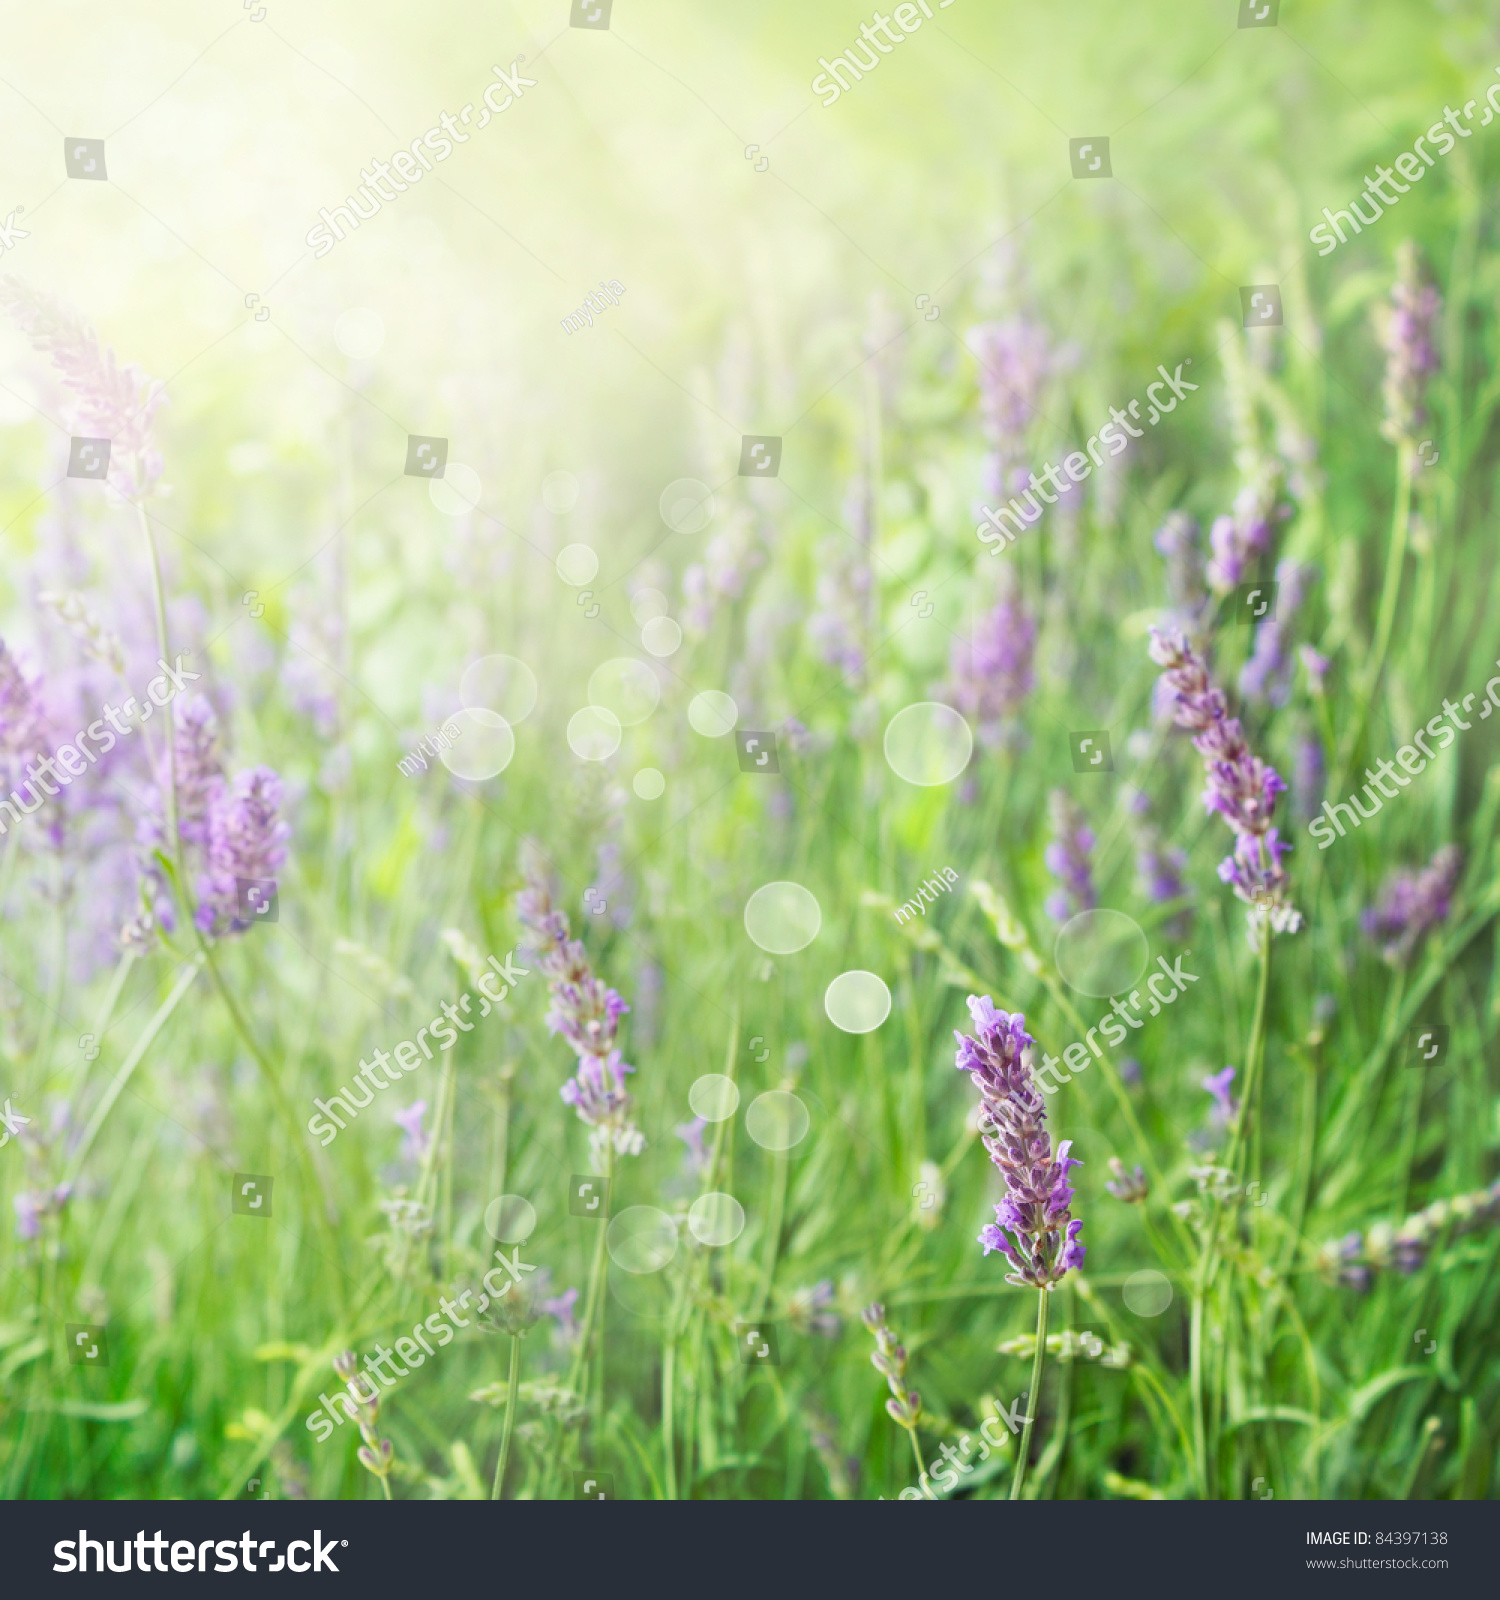 Lavender Field Floral Summer Or Spring Background Field With